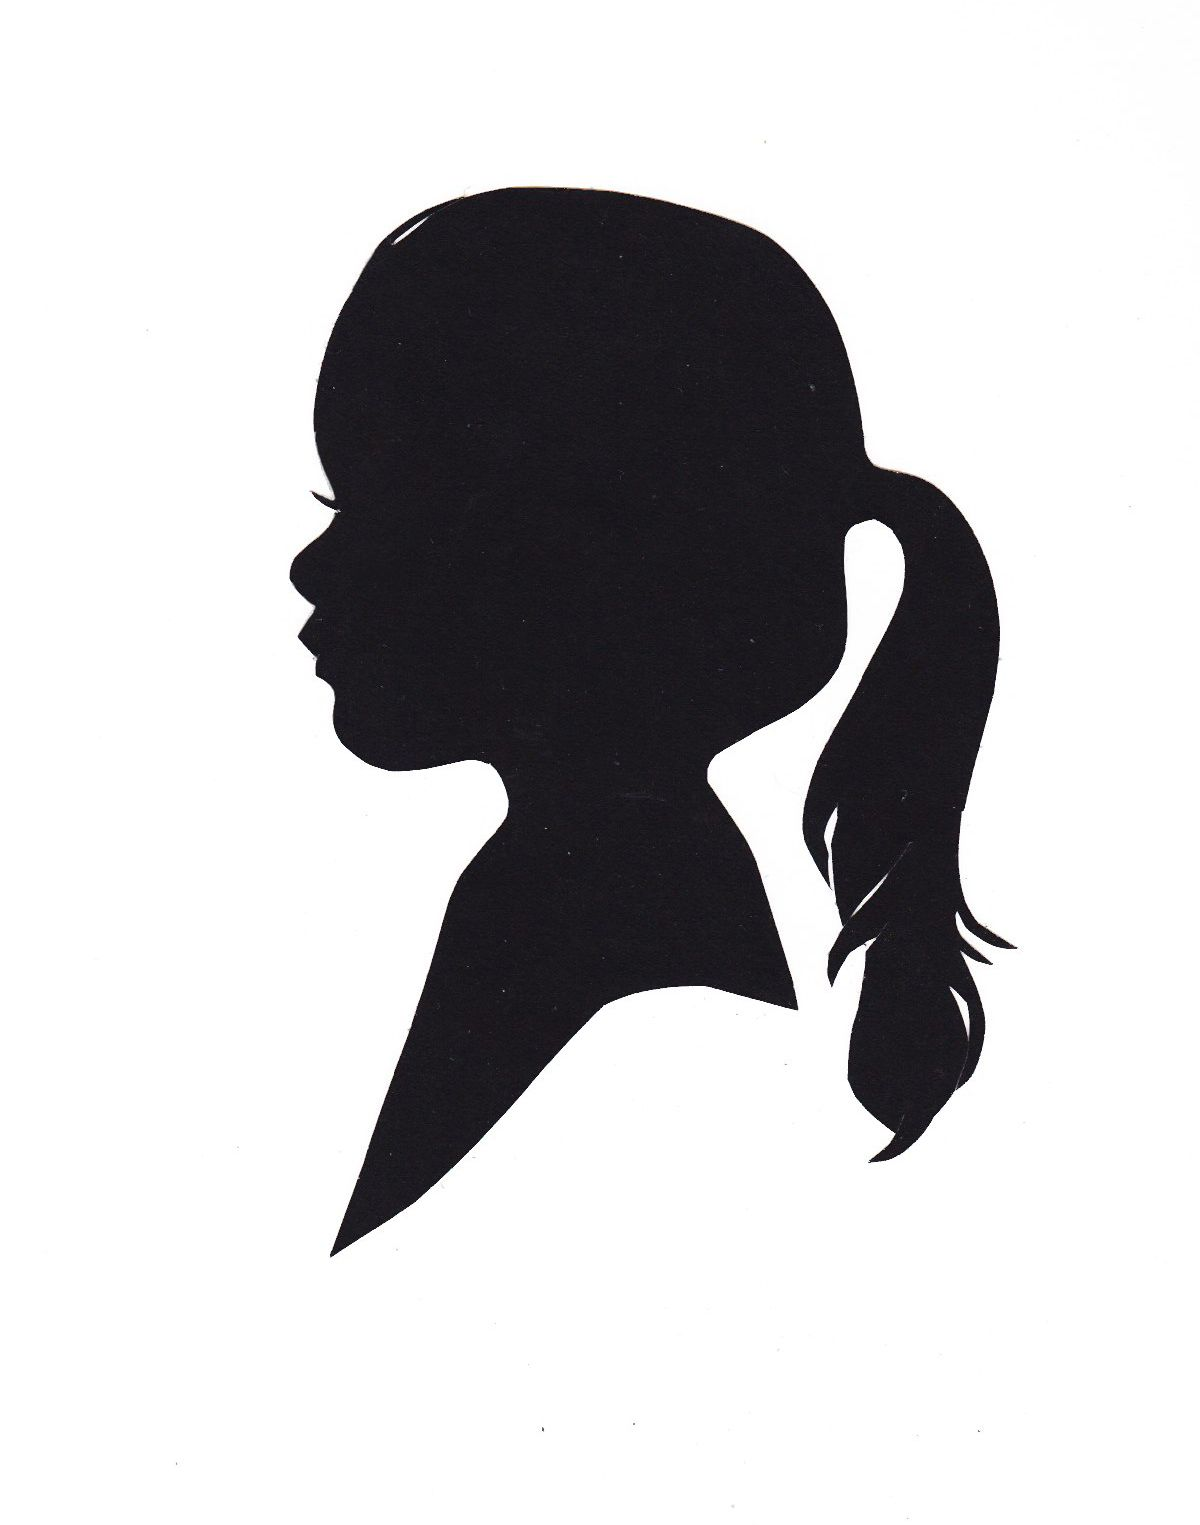 Ponytail girl hair clipart black and white png library Silhouette of a little girl with ponytail | Decorative ... png library